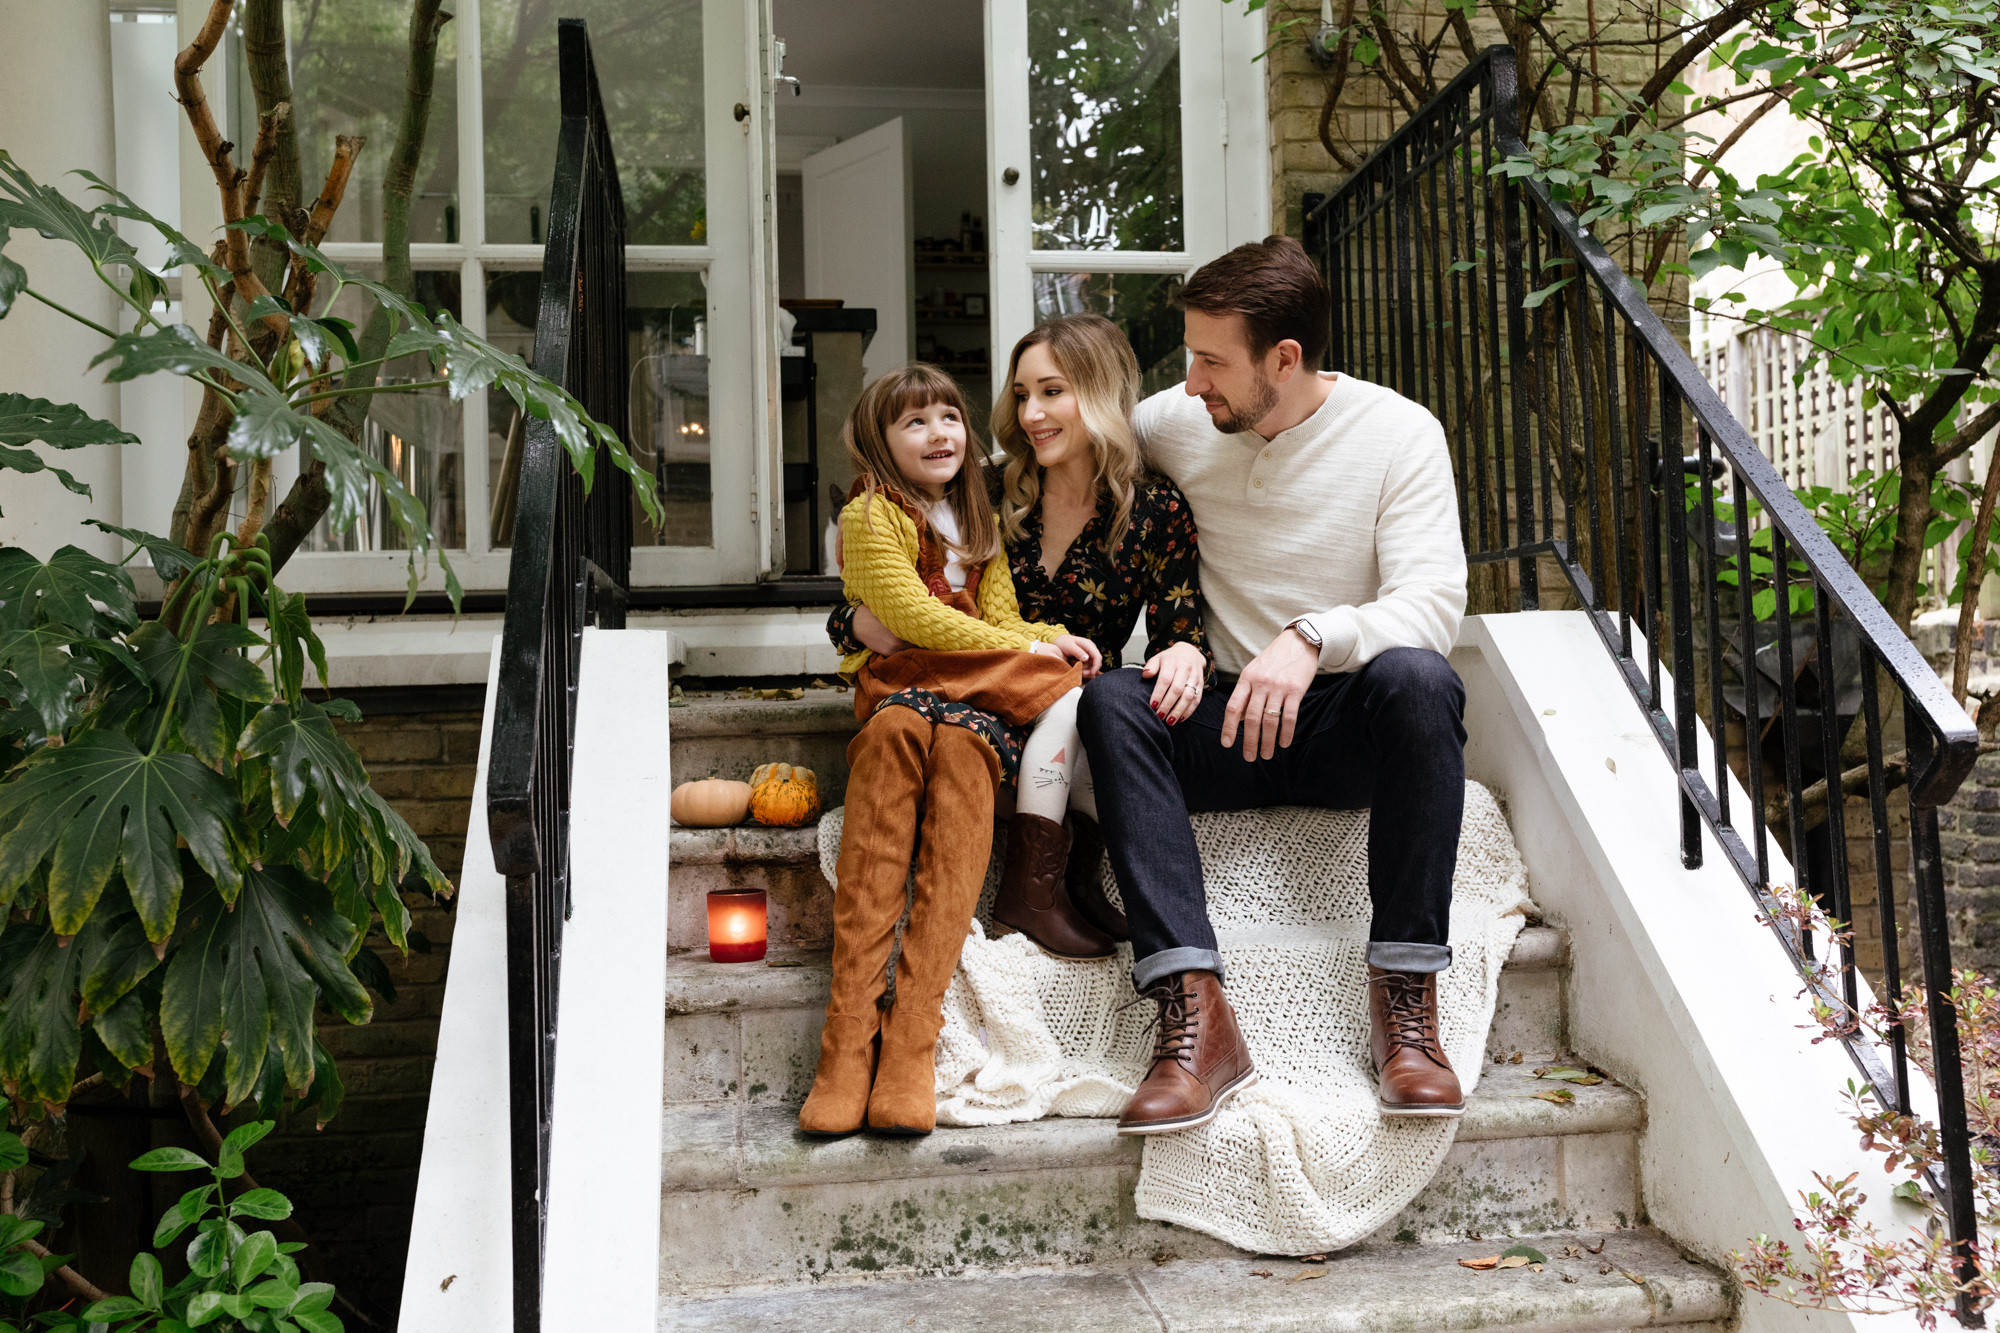 Autumn family portrait photography in Notting Hill Gate, London London Children Photography